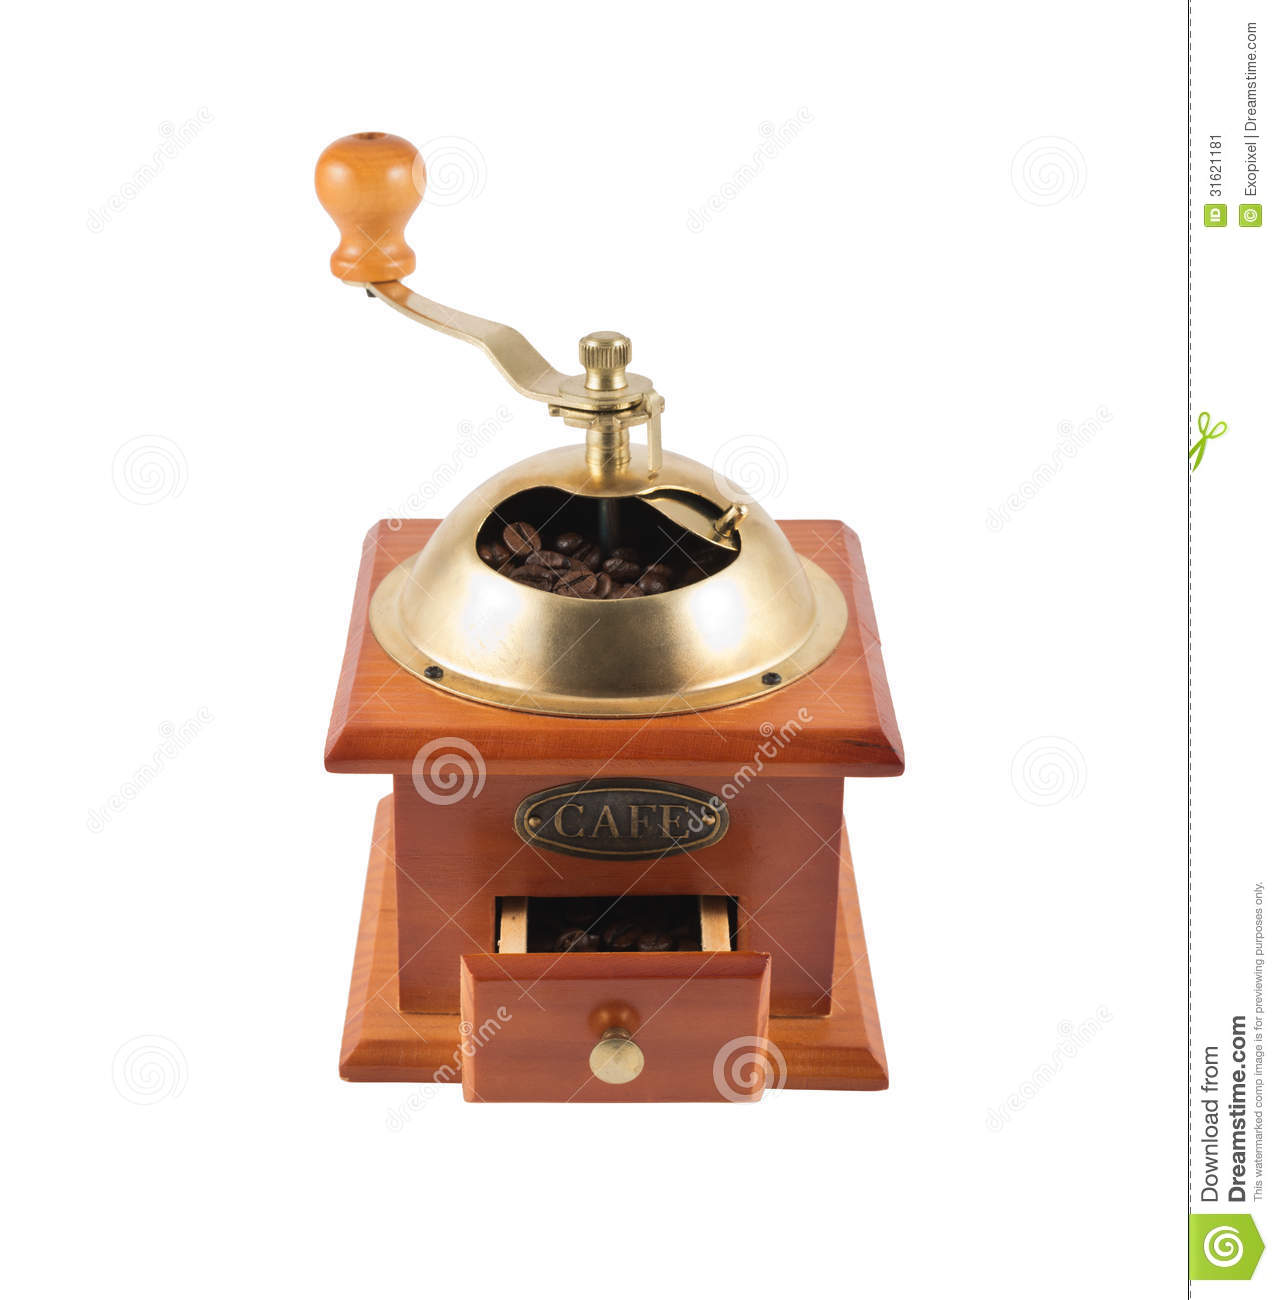 Doral Designs Coffee Maker With Grinder And Timer : Manual Coffee Bean Mill Grinder Isolated Stock Image - Image of black, coffee: 31621181